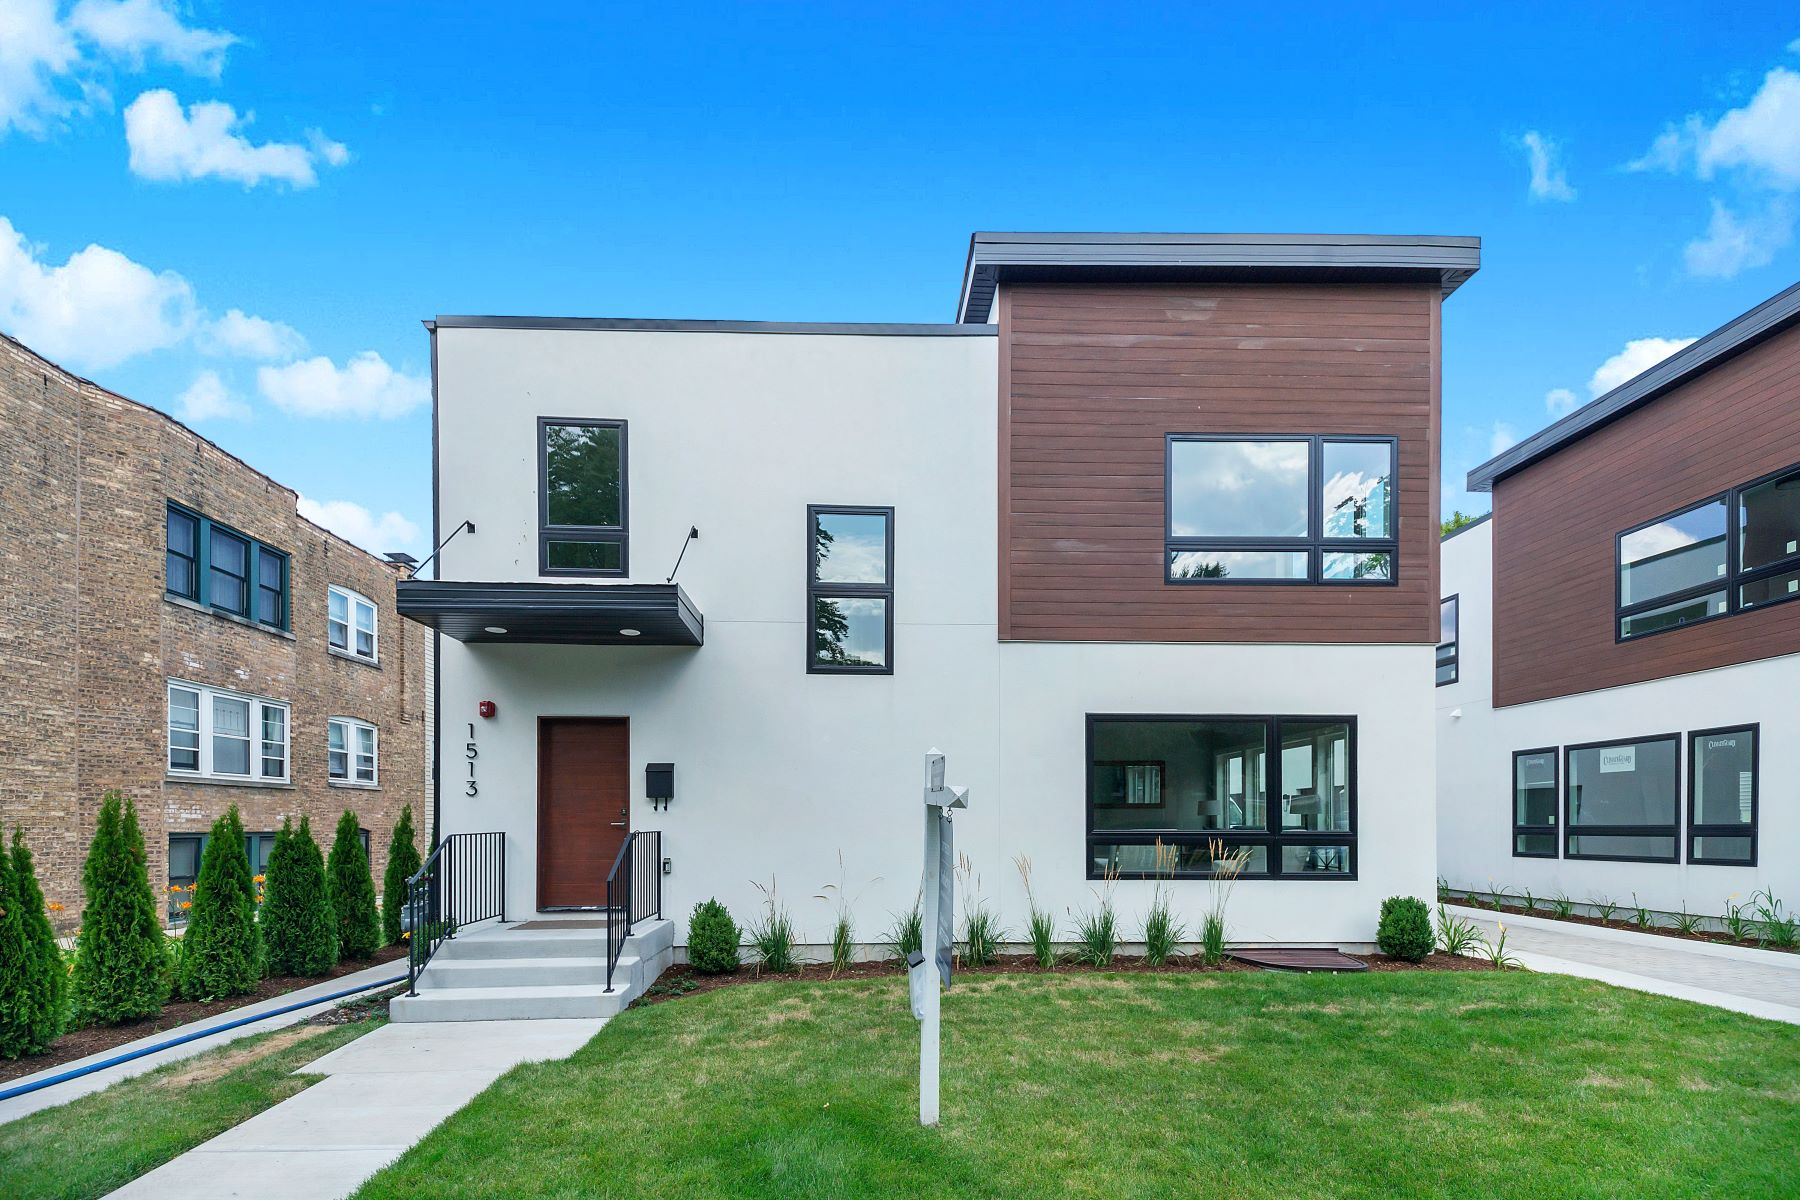 Single Family Homes for Active at Modern Luxury Family Townhome 1513 Wilder Street Evanston, Illinois 60202 United States